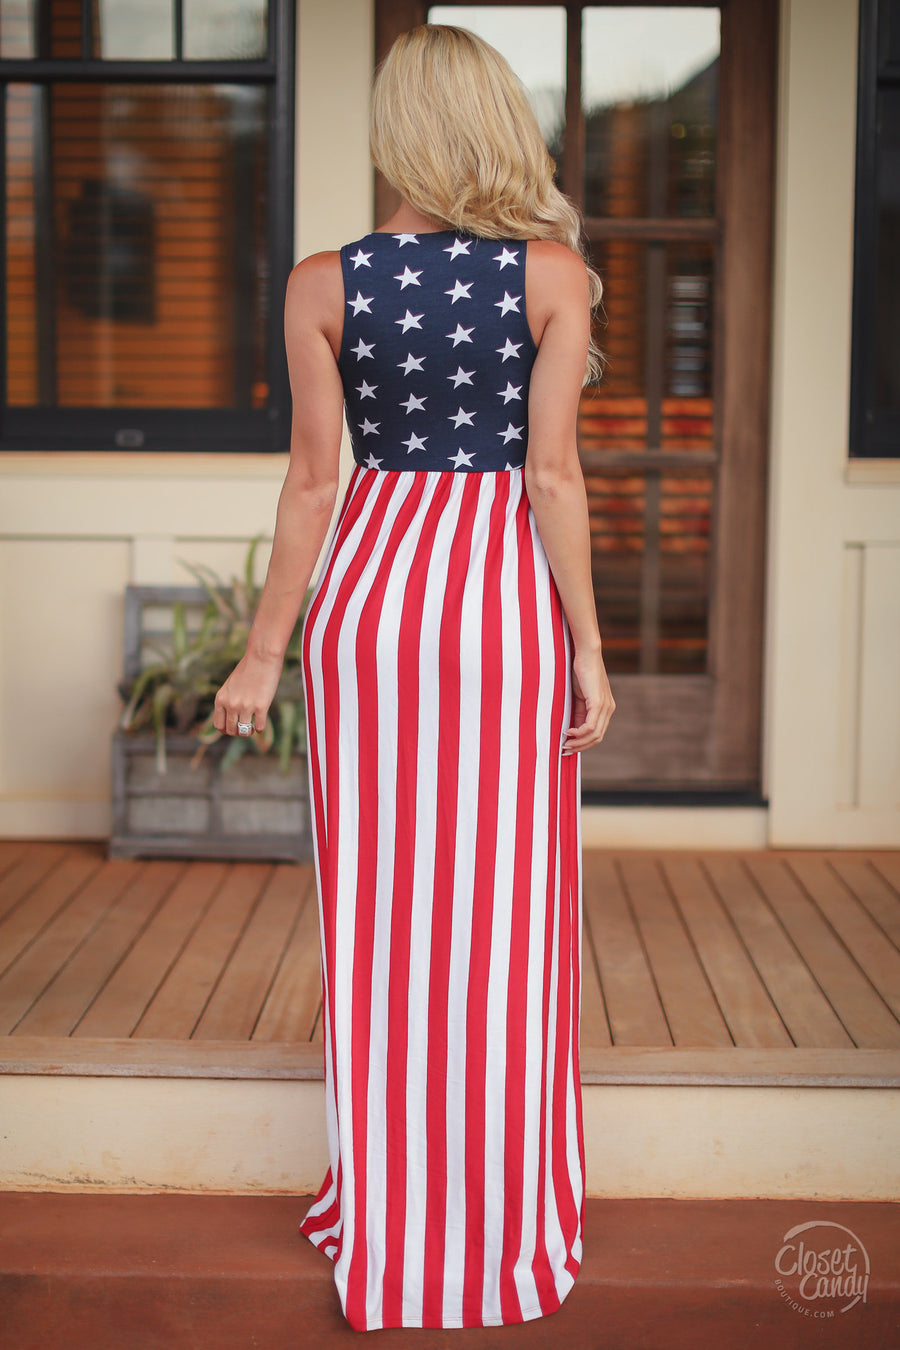 Closet Candy Boutique - 4th of July maxi dress, stars and stripes, red, white and blue outfit